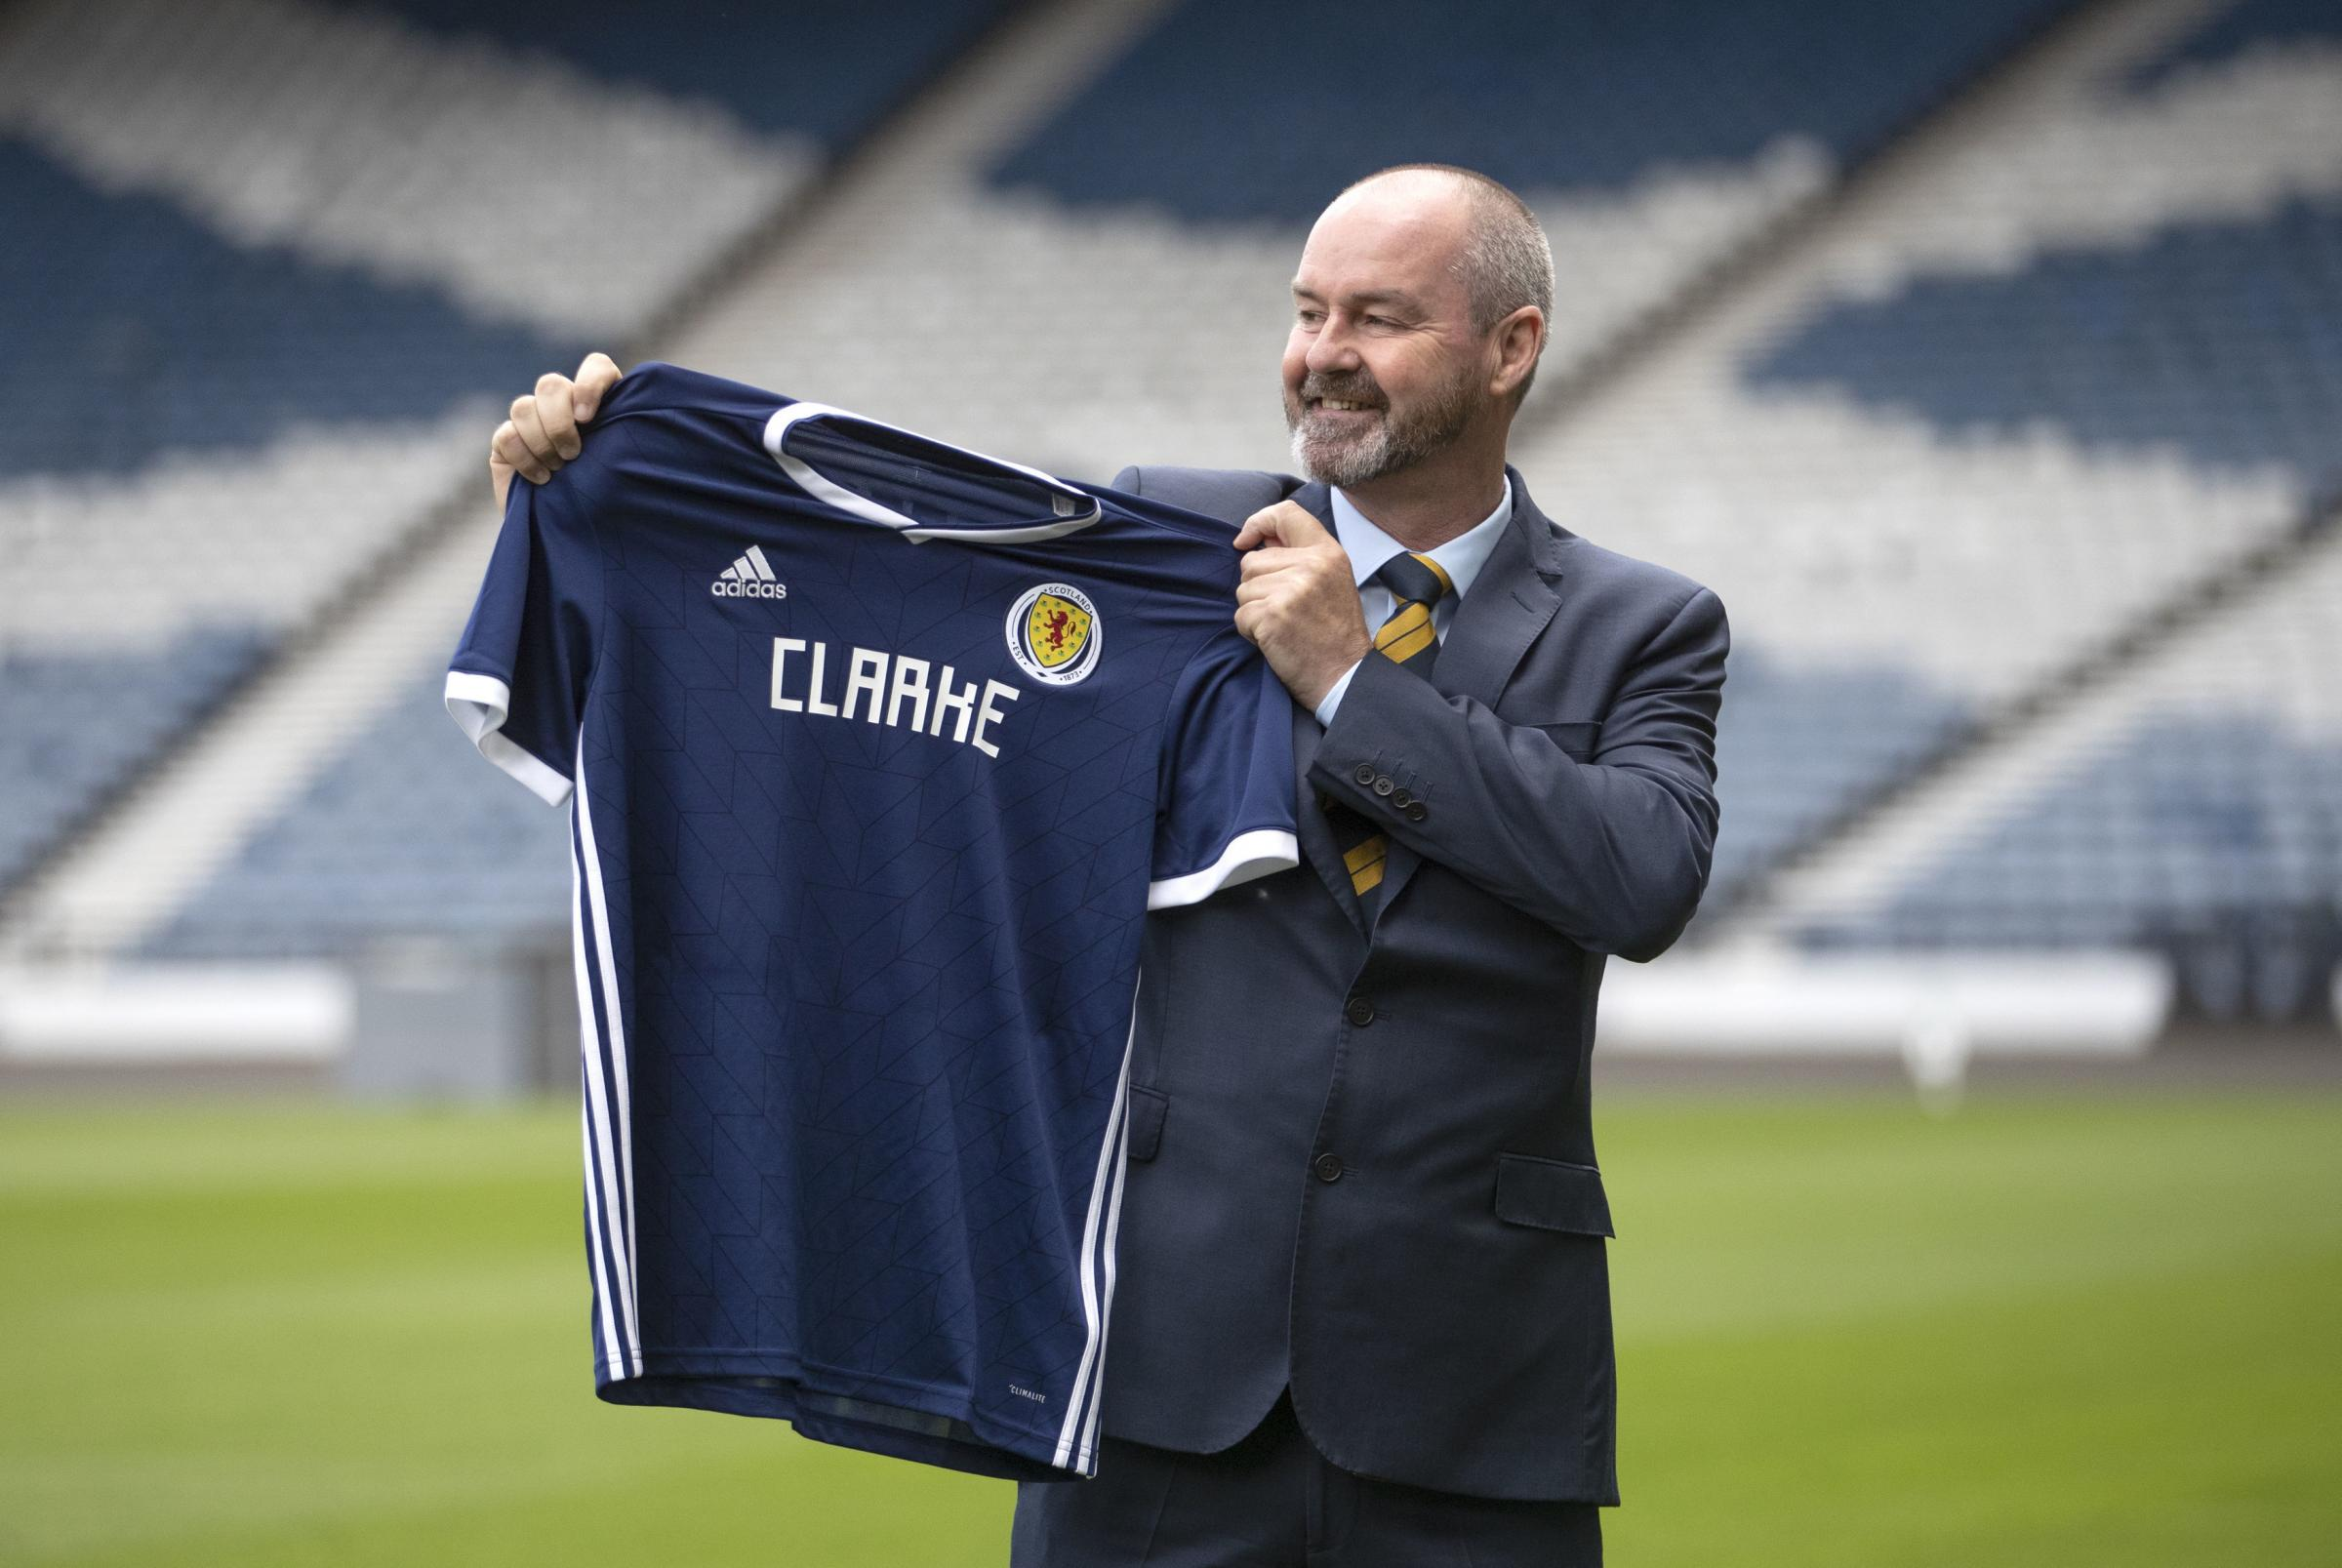 It's time for the Scottish football family to rally round